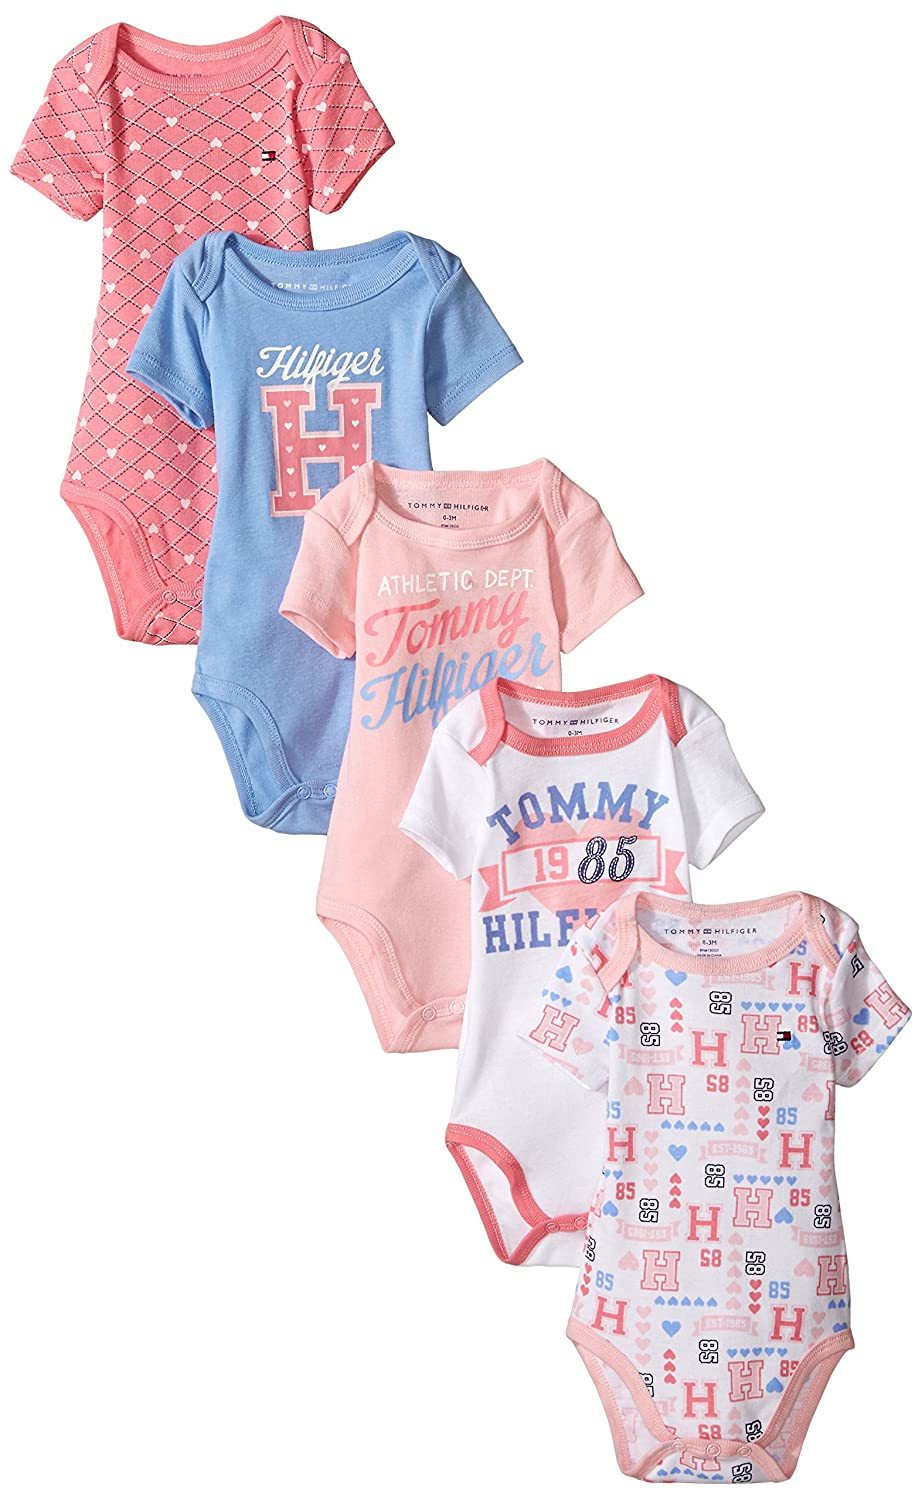 dd5b8ba99 Amazon.com: Tommy Hilfiger Baby Girls' Print and Solid Bodysuits (Pack of 5):  Clothing